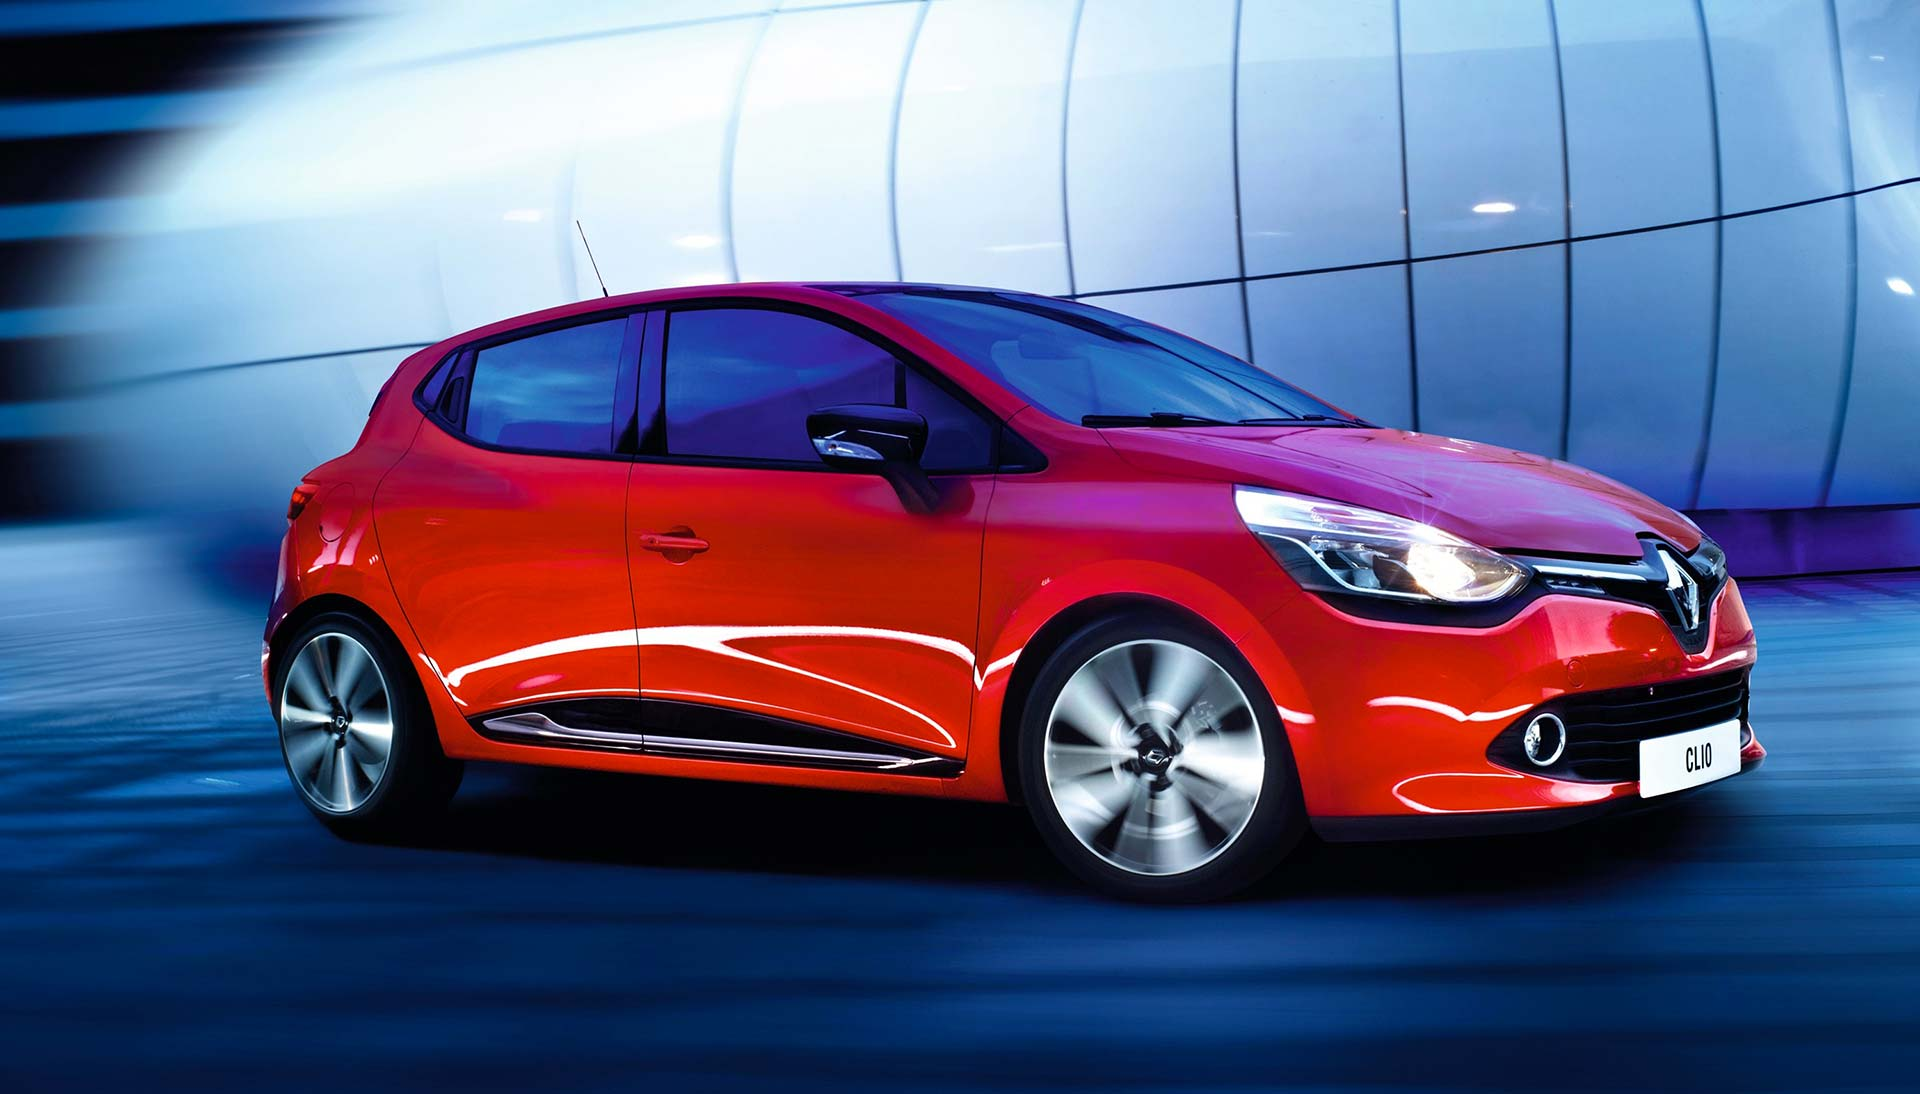 fast test renault clio dci 75 cv red live. Black Bedroom Furniture Sets. Home Design Ideas